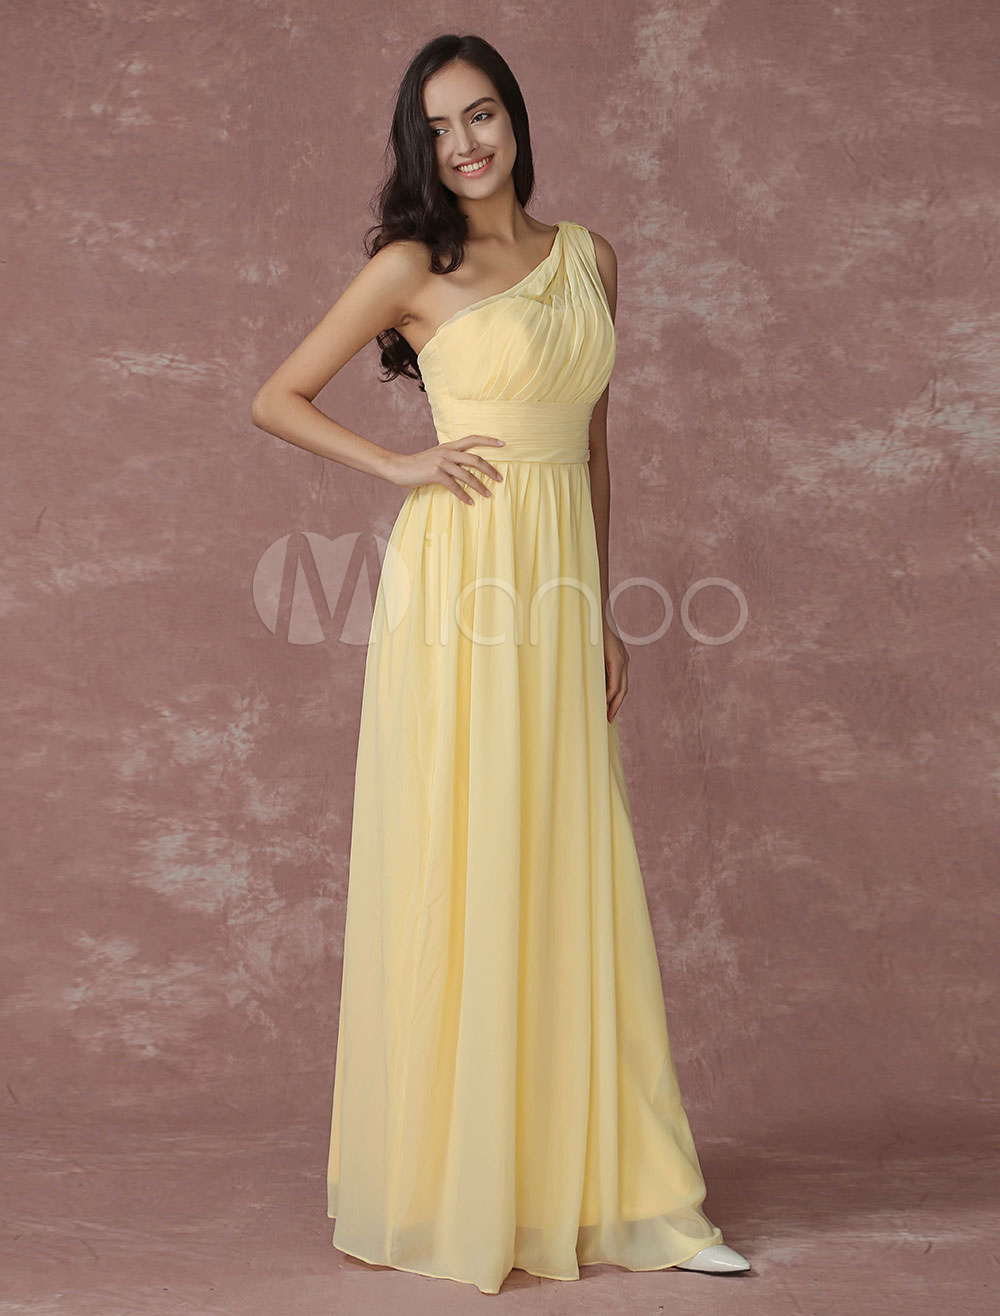 Buy Daffodil Bridesmaid Dress Chiffon One Shoulder A Line Ruched Maxi Wedding Party Dress for $115.19 in Milanoo store